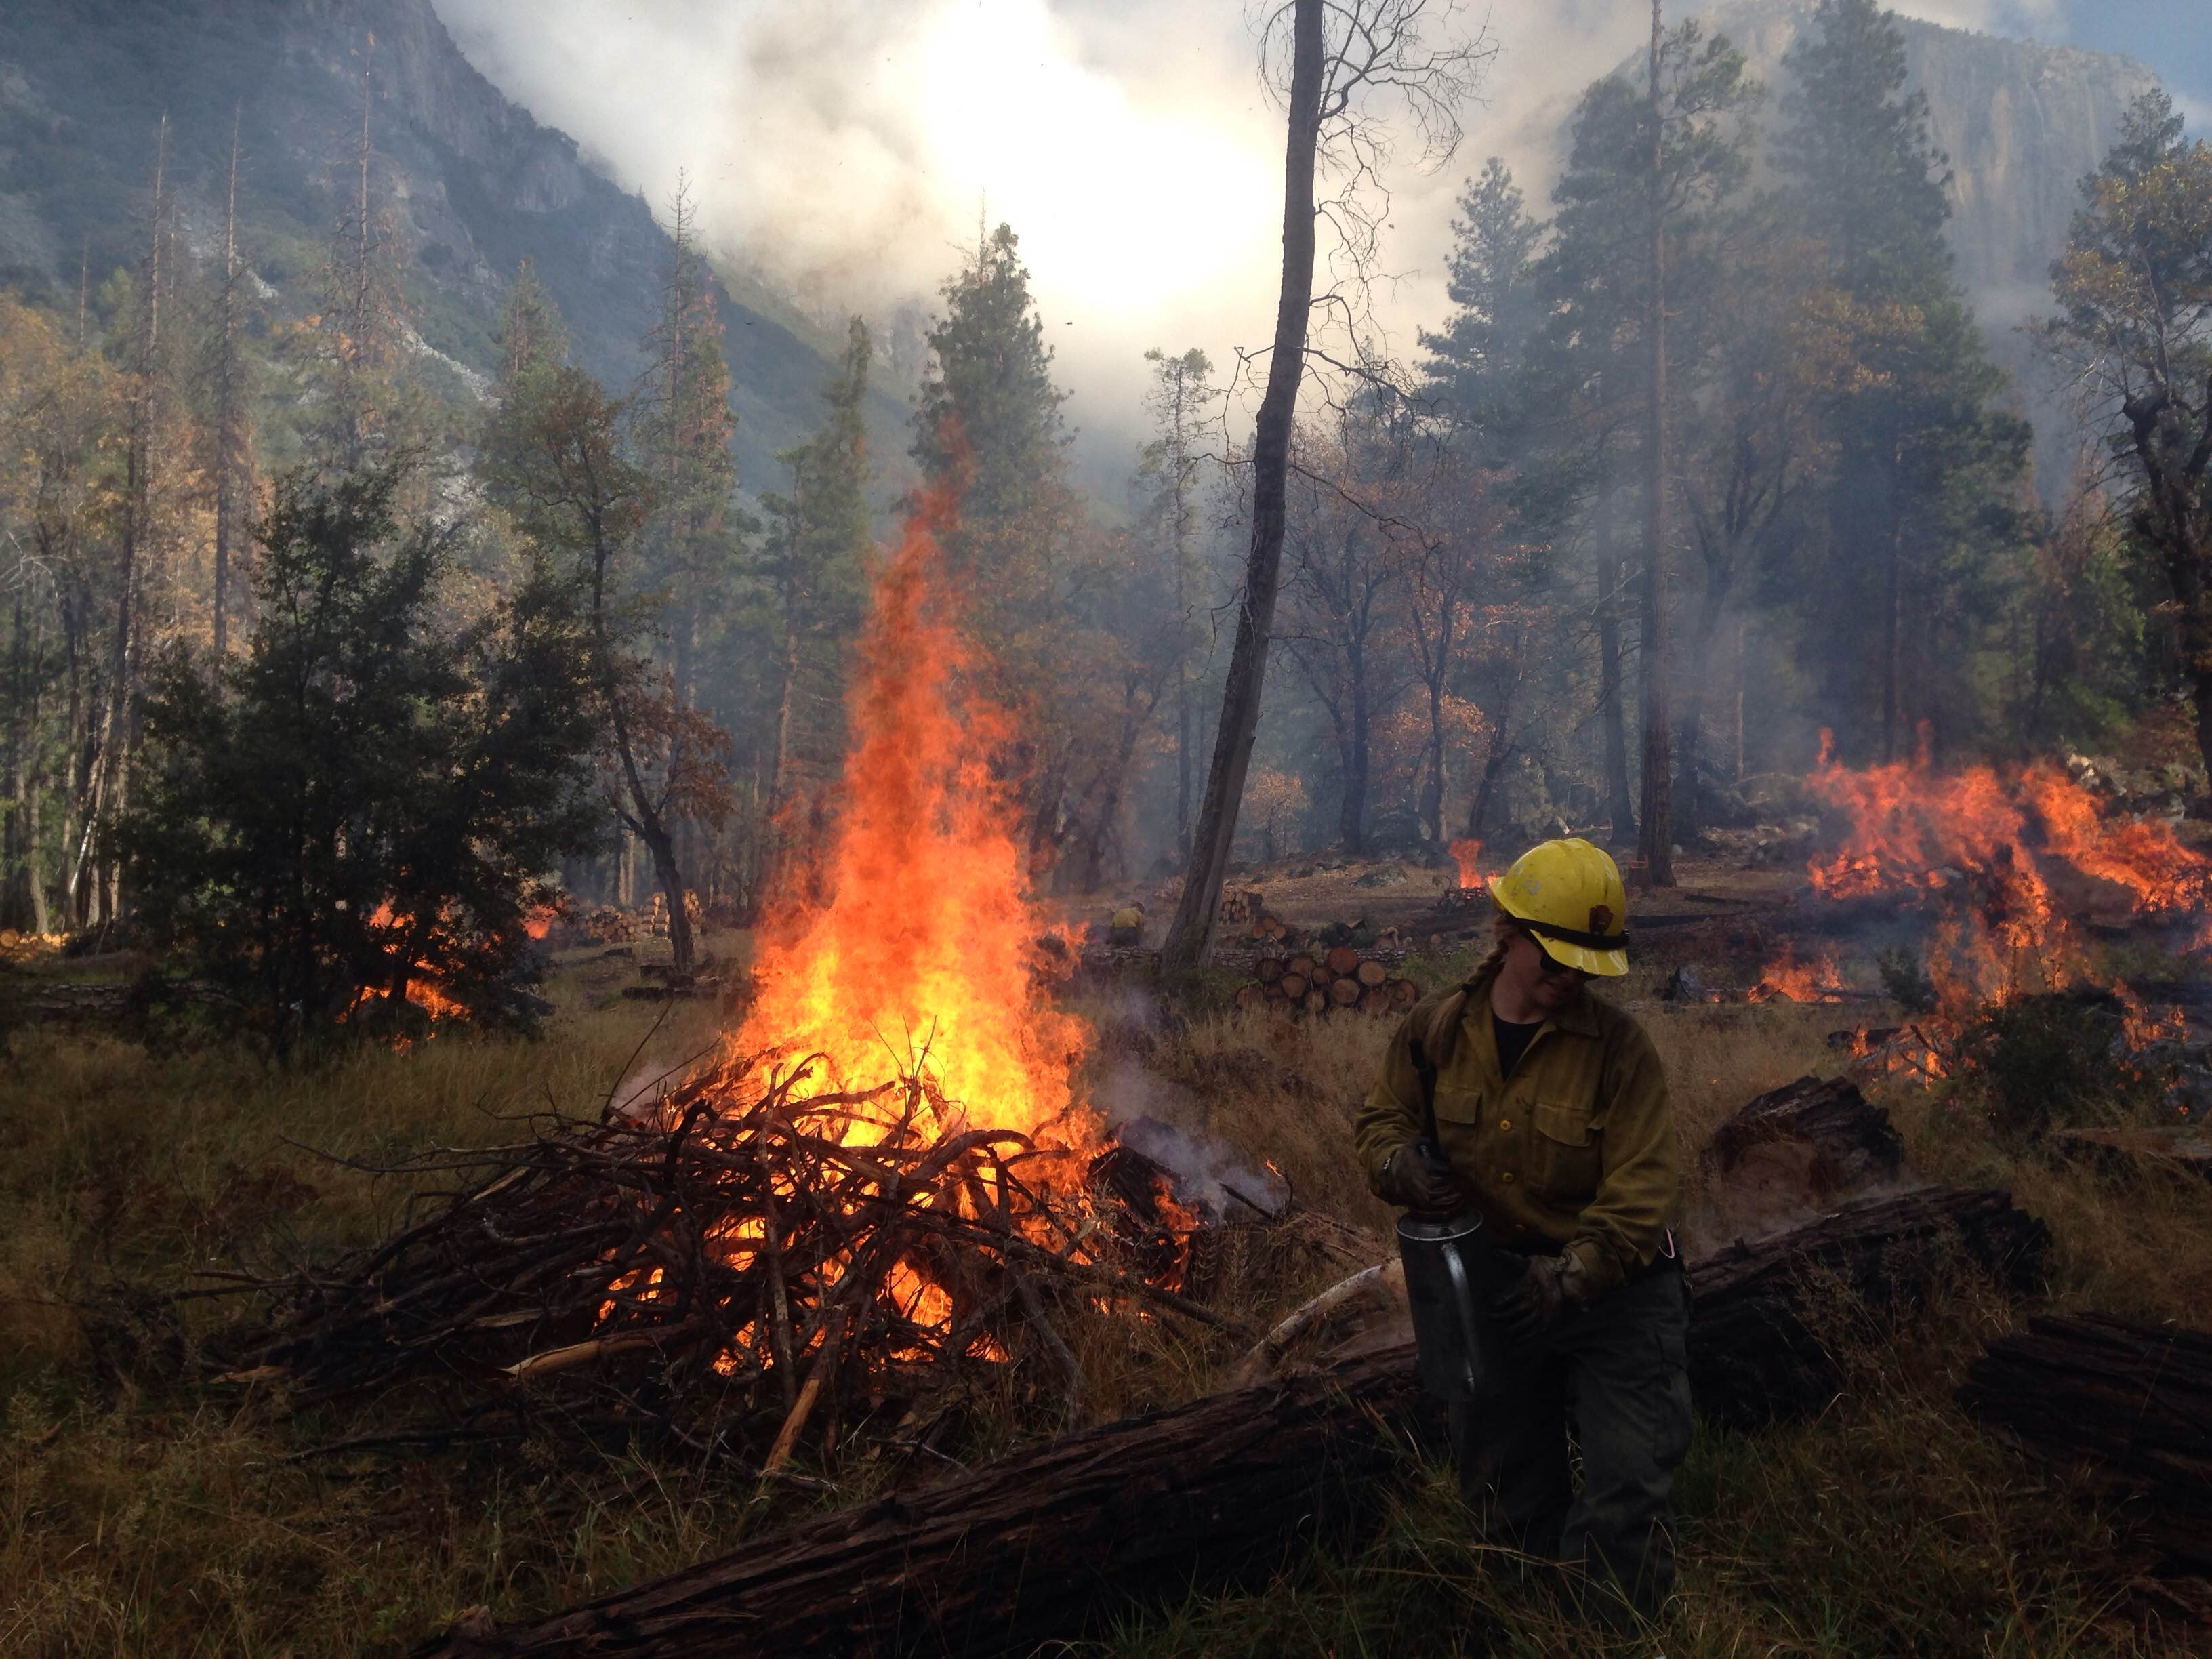 Burning debris piles in Bridalveil Meadow, Yosemite National Park